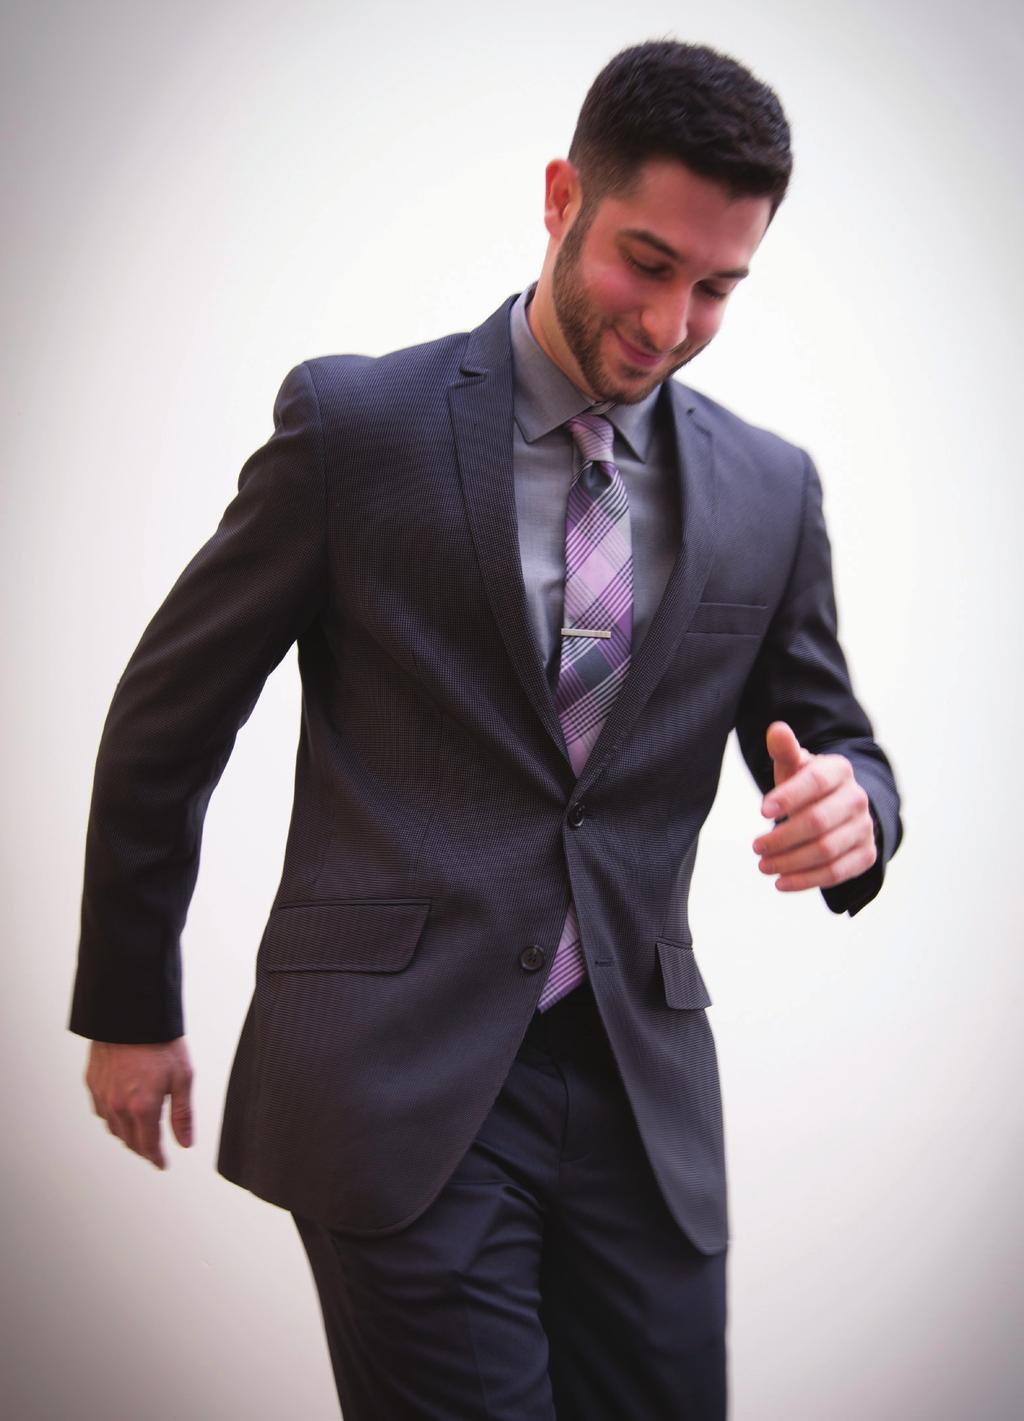 Client Days SUIT UP On days you will have client contact or